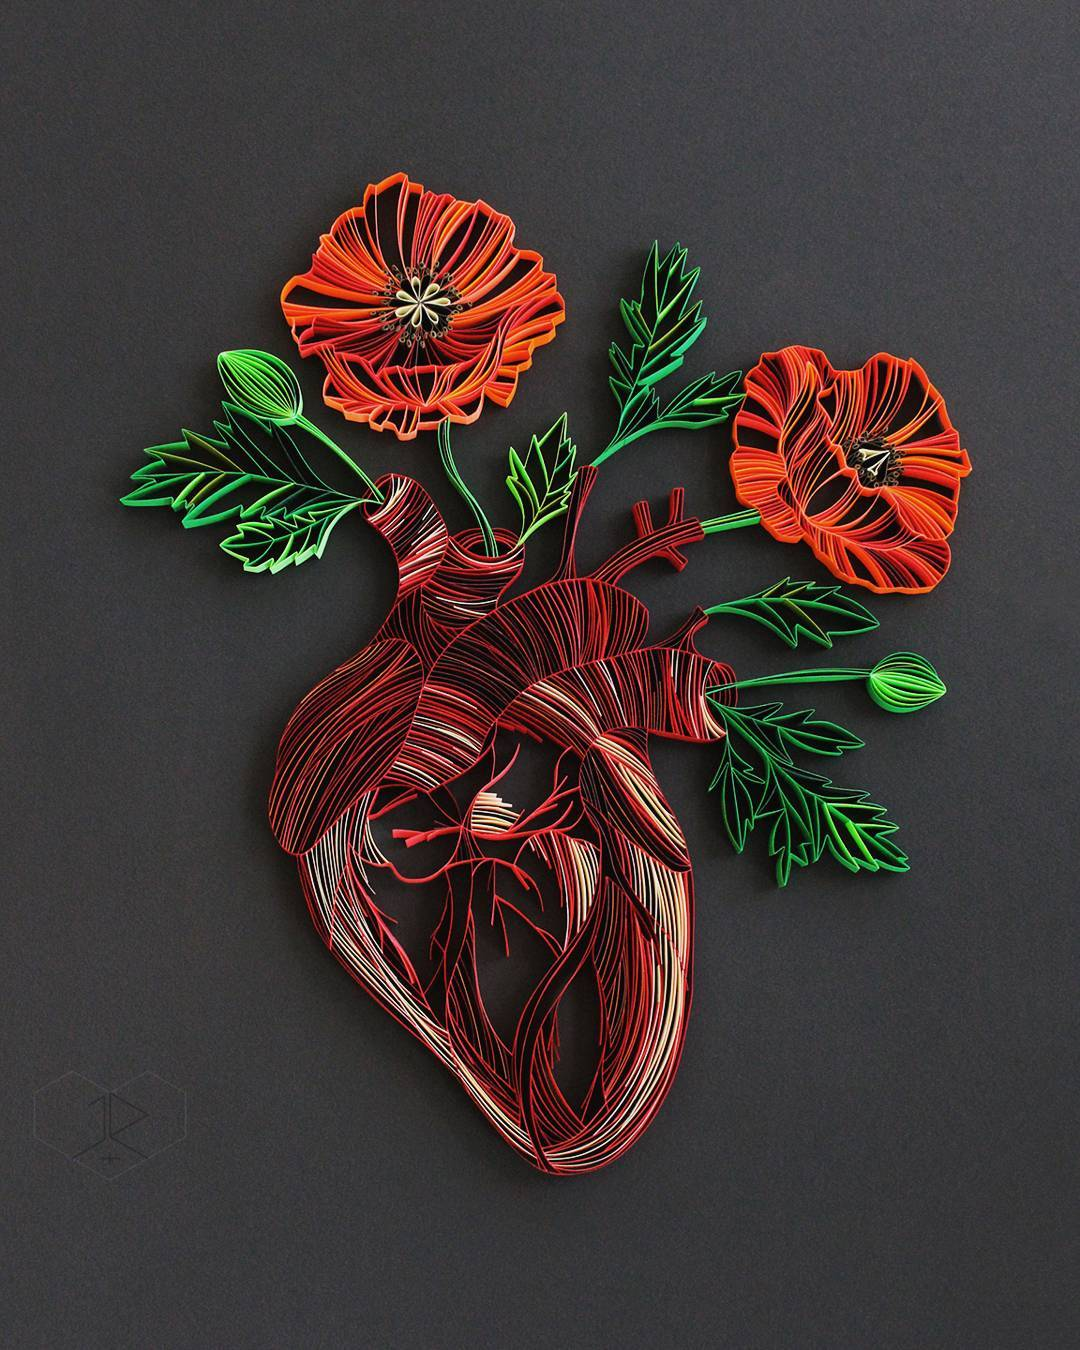 Judith+Rolfe Quilled Paper Art